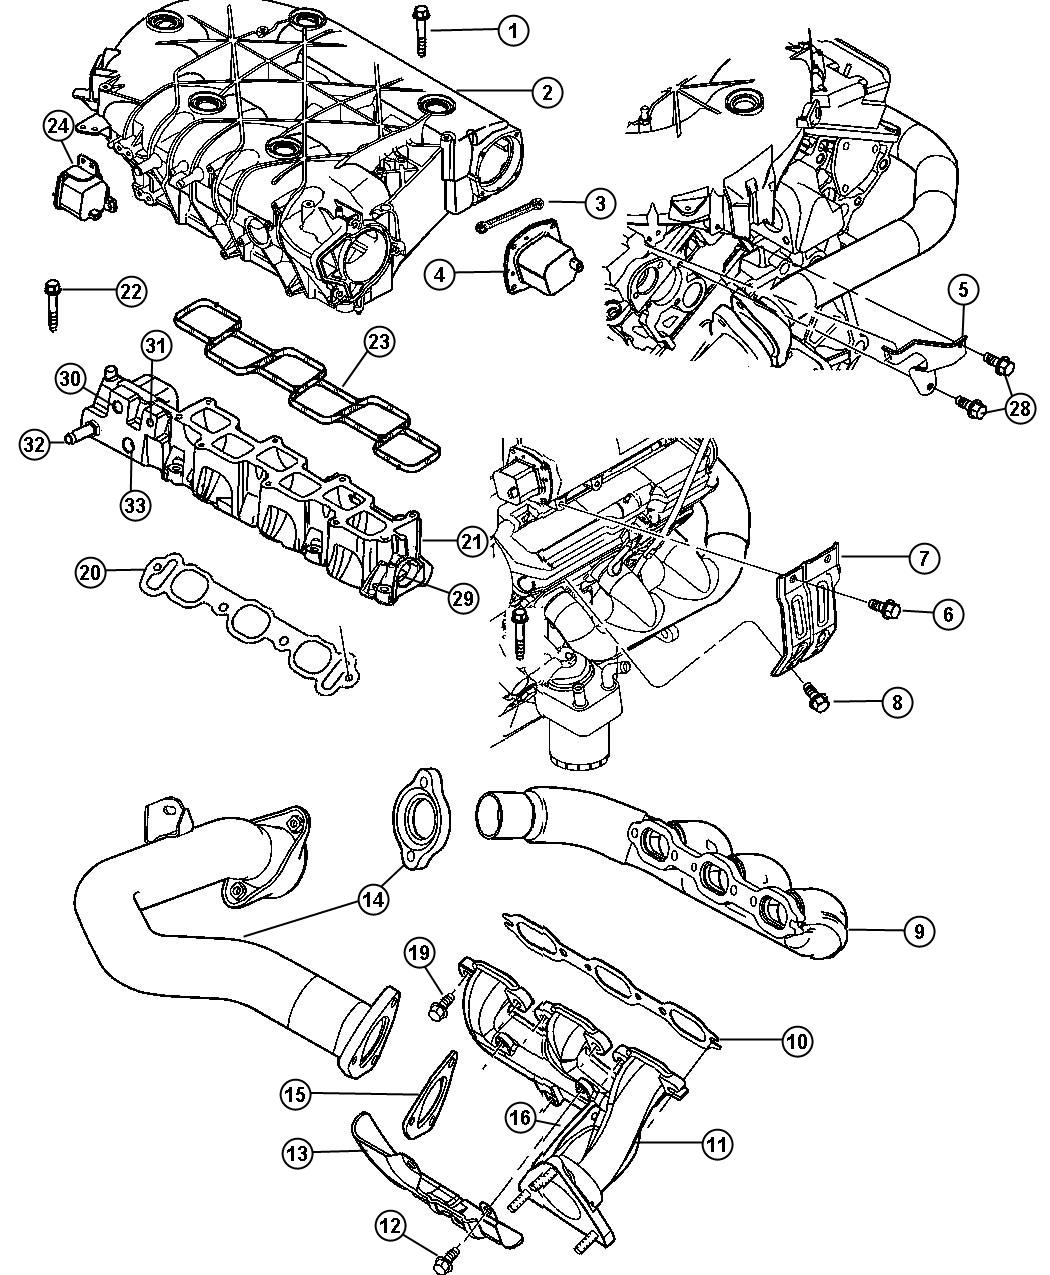 2006 Chrysler Pacifica Gasket. Exhaust manifold. Engine